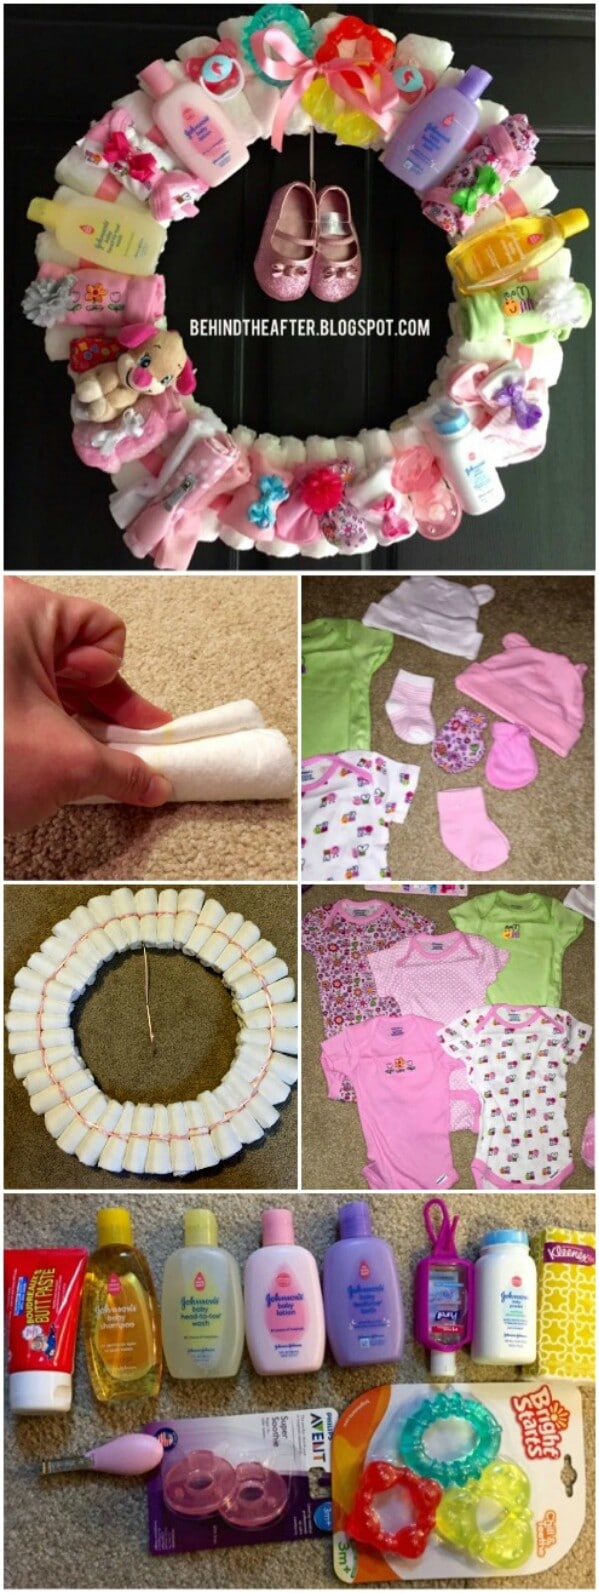 10 Fabulous Baby Shower Gifts For Guests Ideas 25 enchantingly adorable baby shower gift ideas that will make you 11 2020